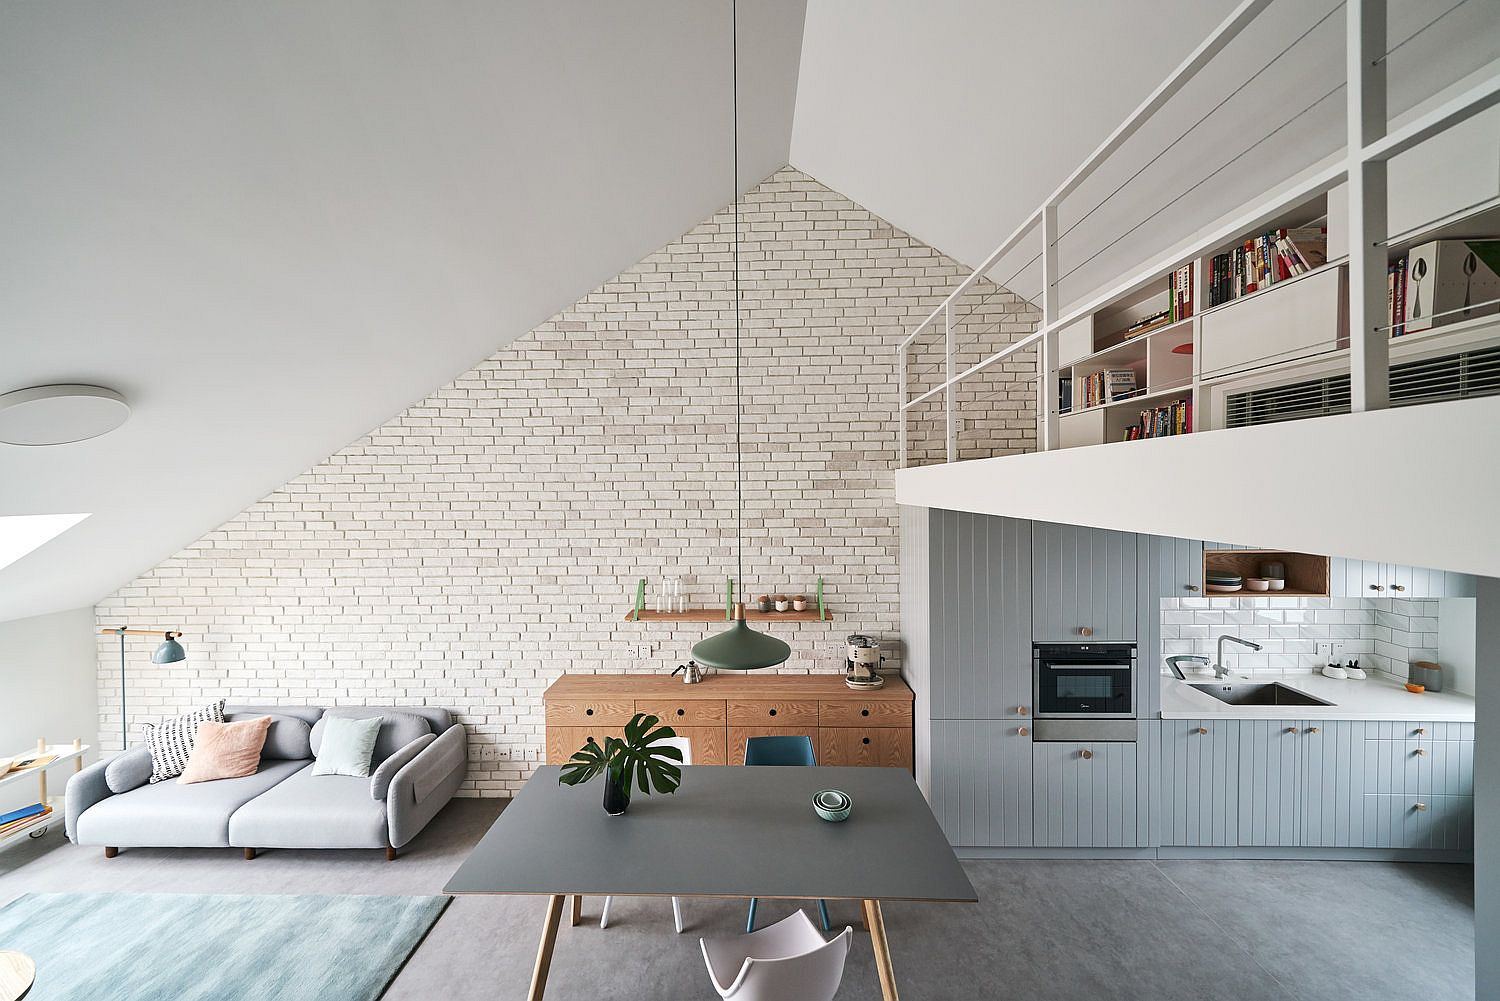 Gorgeous and space-conscious apartment design with mezzanine level bedroom